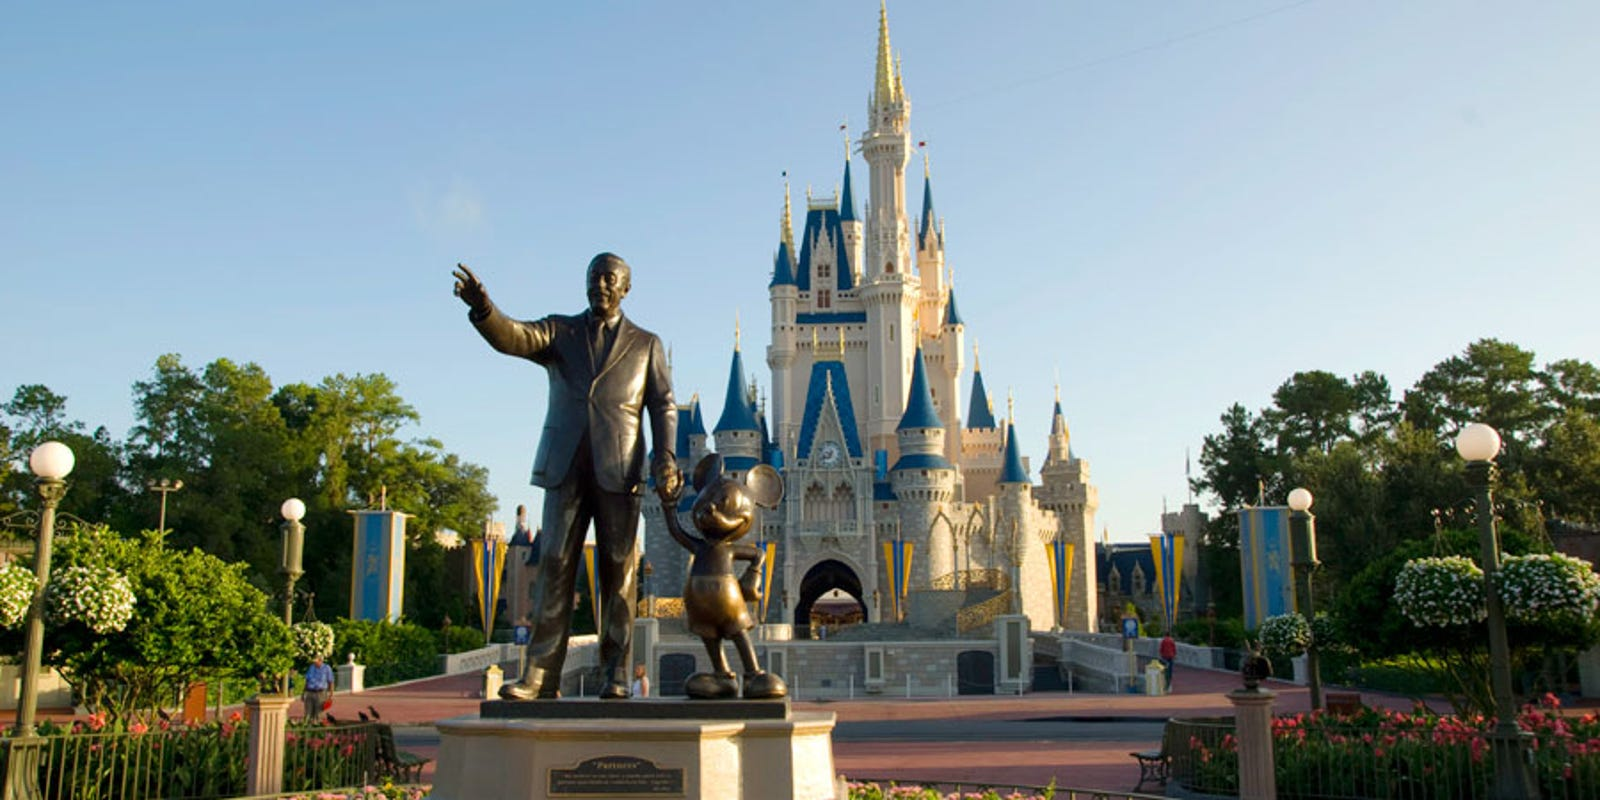 Walt Disney World sued after 250 employees laid off